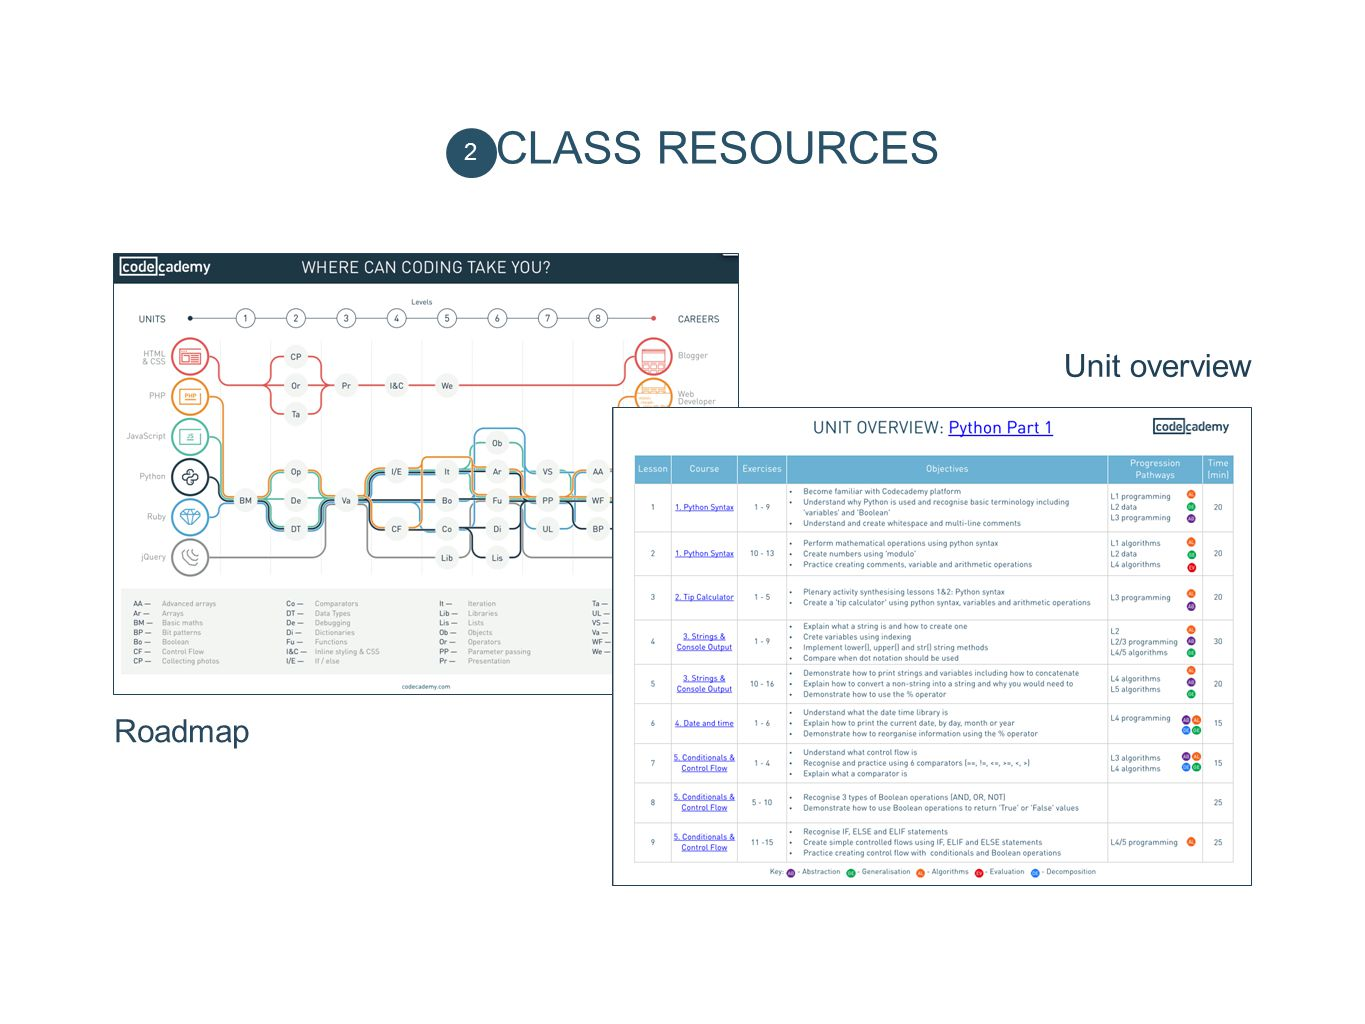 CLASS RESOURCES Unit overview Roadmap 2 Class resources